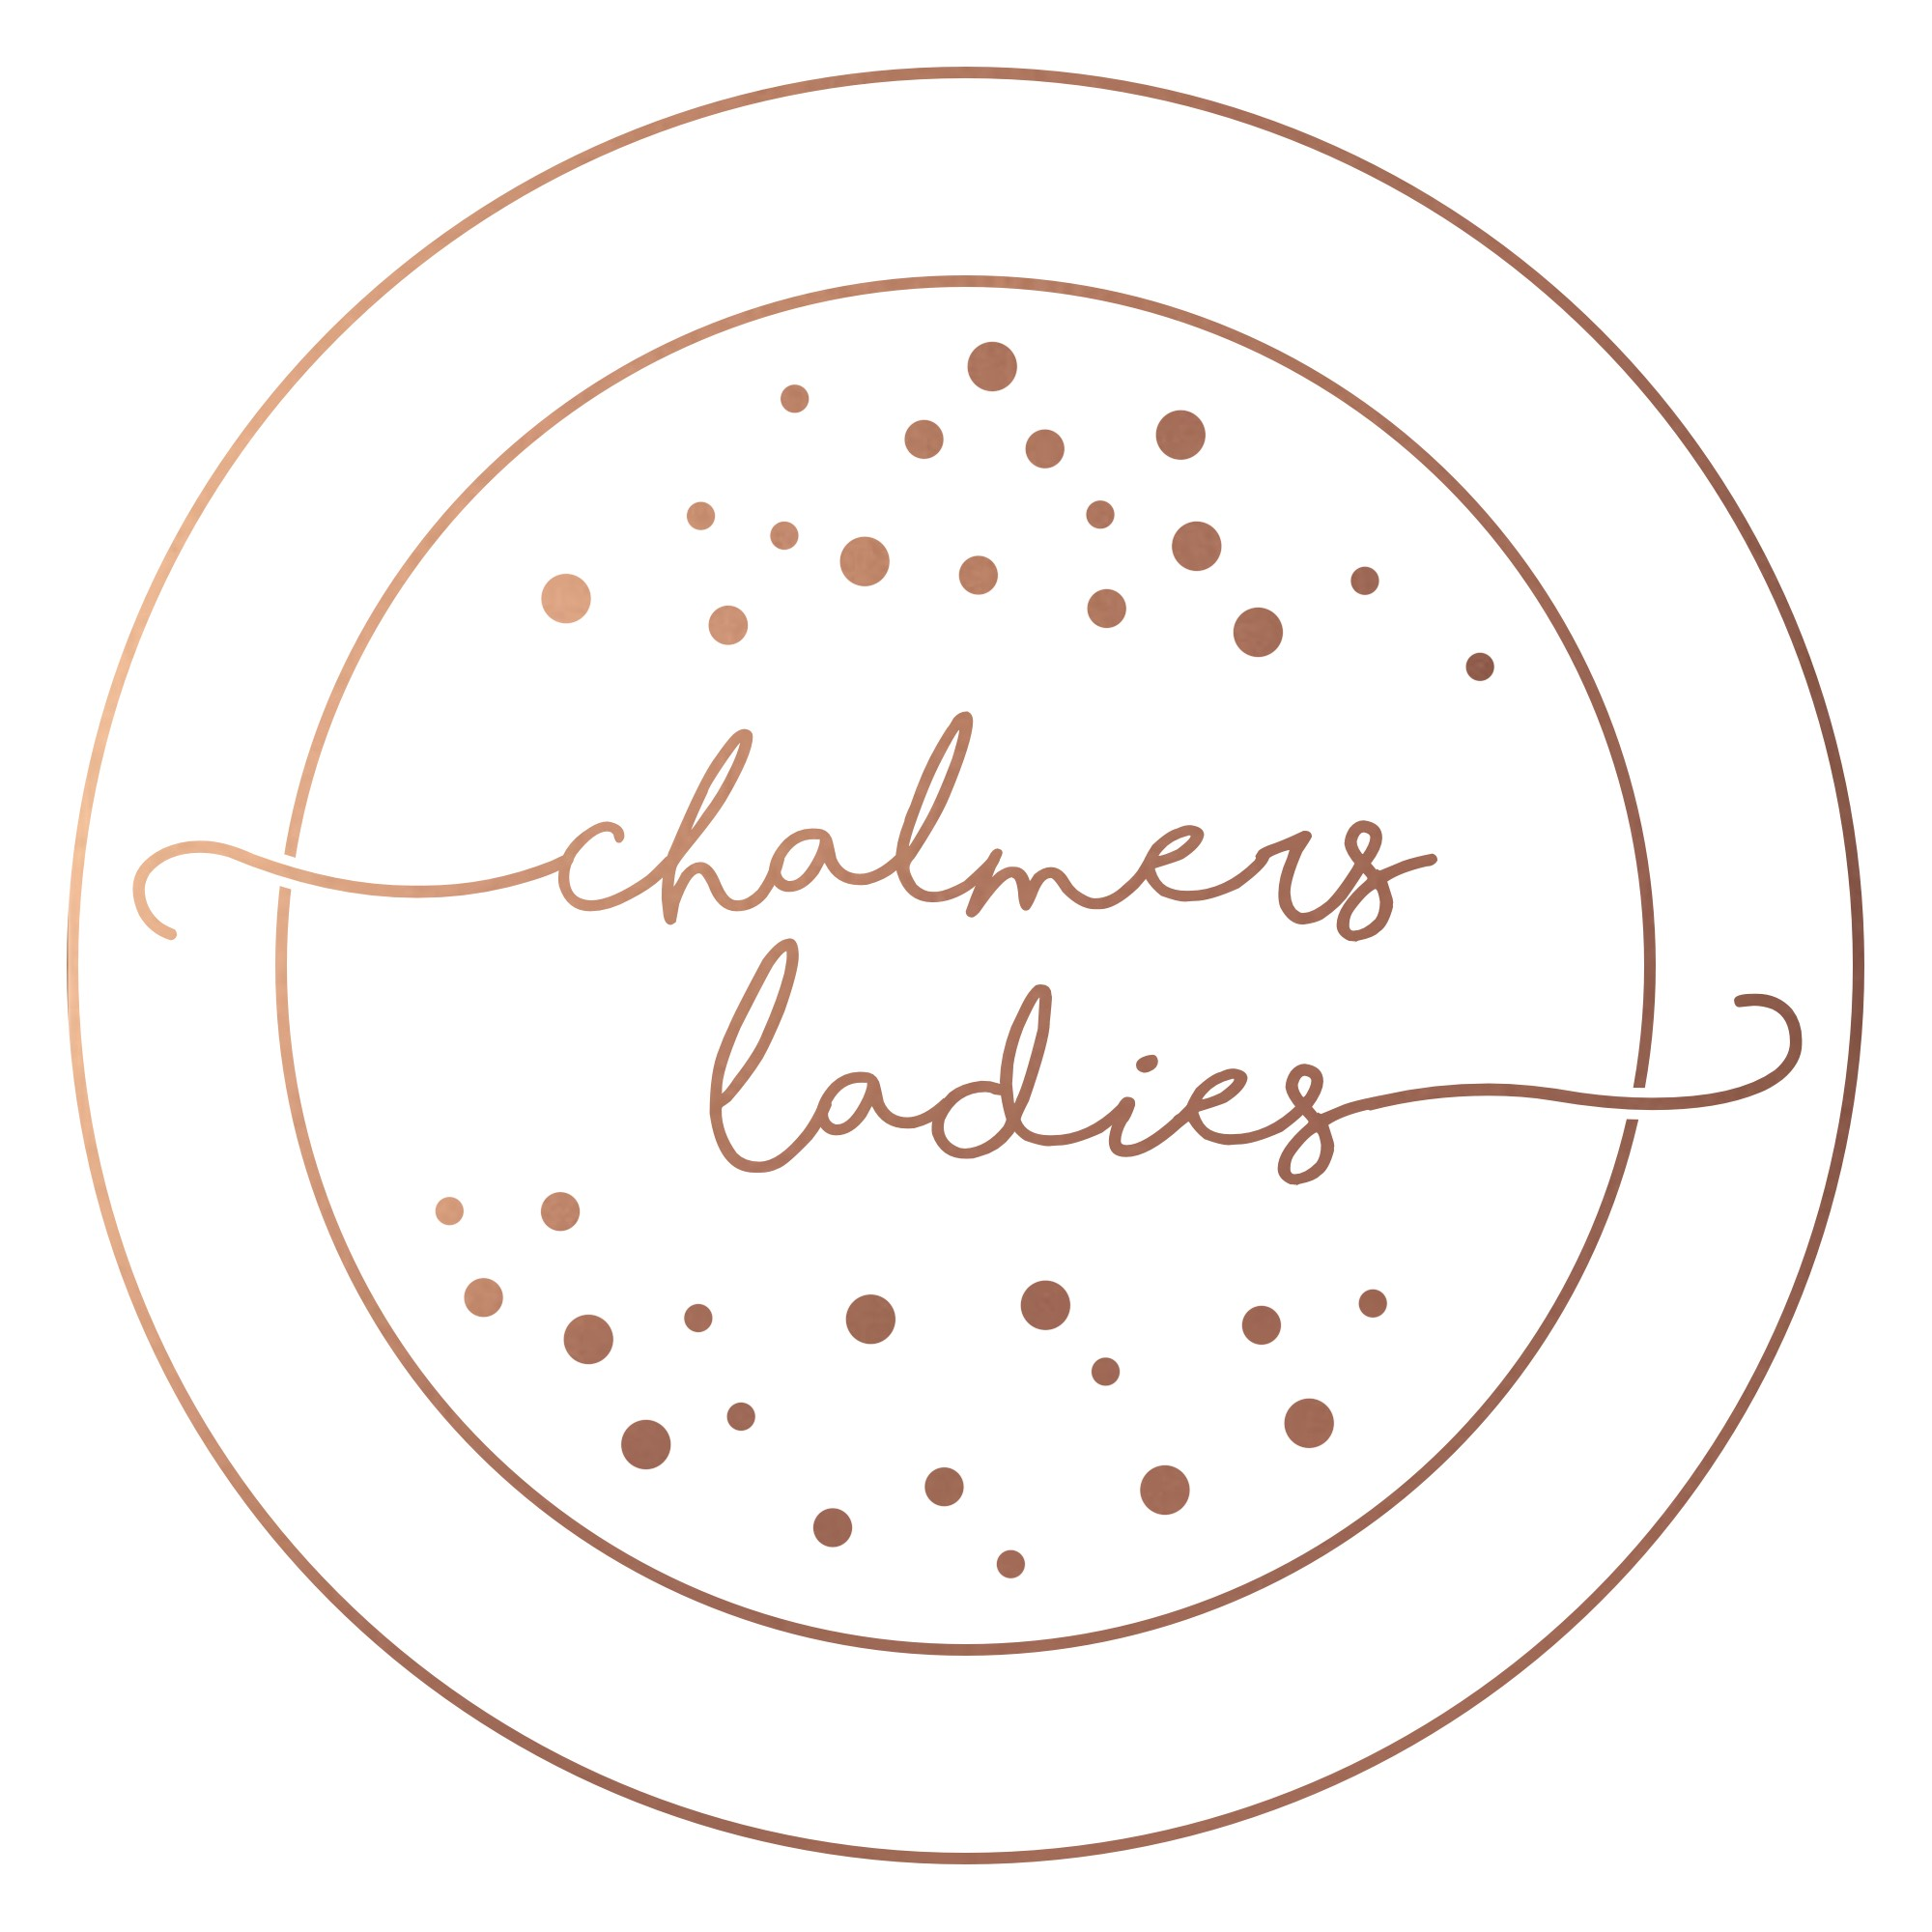 Chalmers Ladies - web